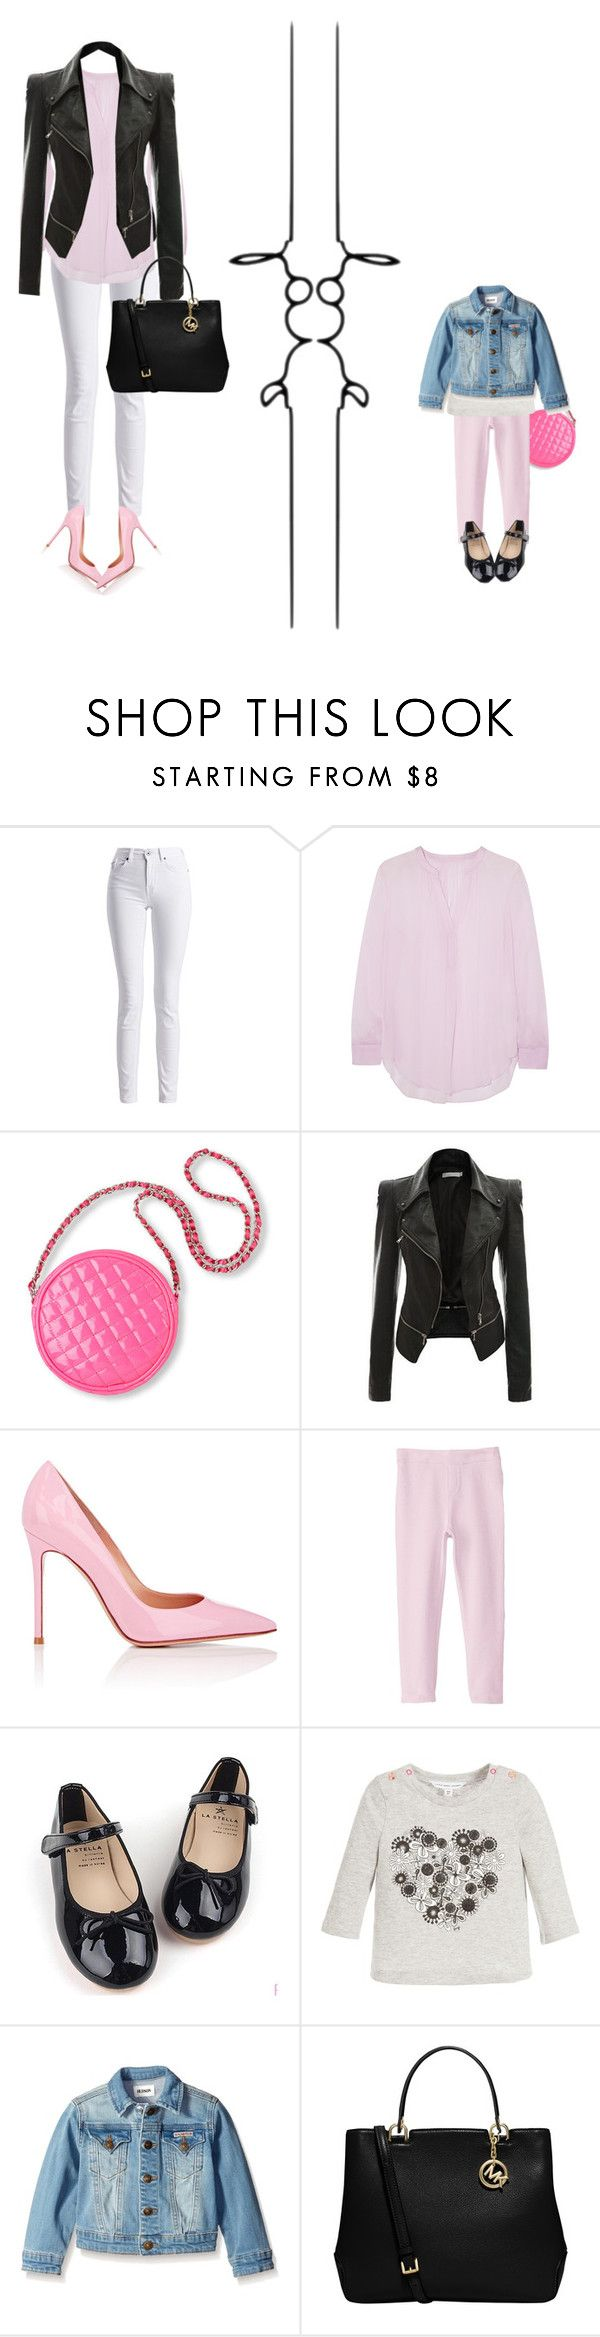 """Today's Look."" by maja-el-aly ❤ liked on Polyvore featuring Barbour International, Raquel Allegra, Gianvito Rossi, The Children's Place and MICHAEL Michael Kors"